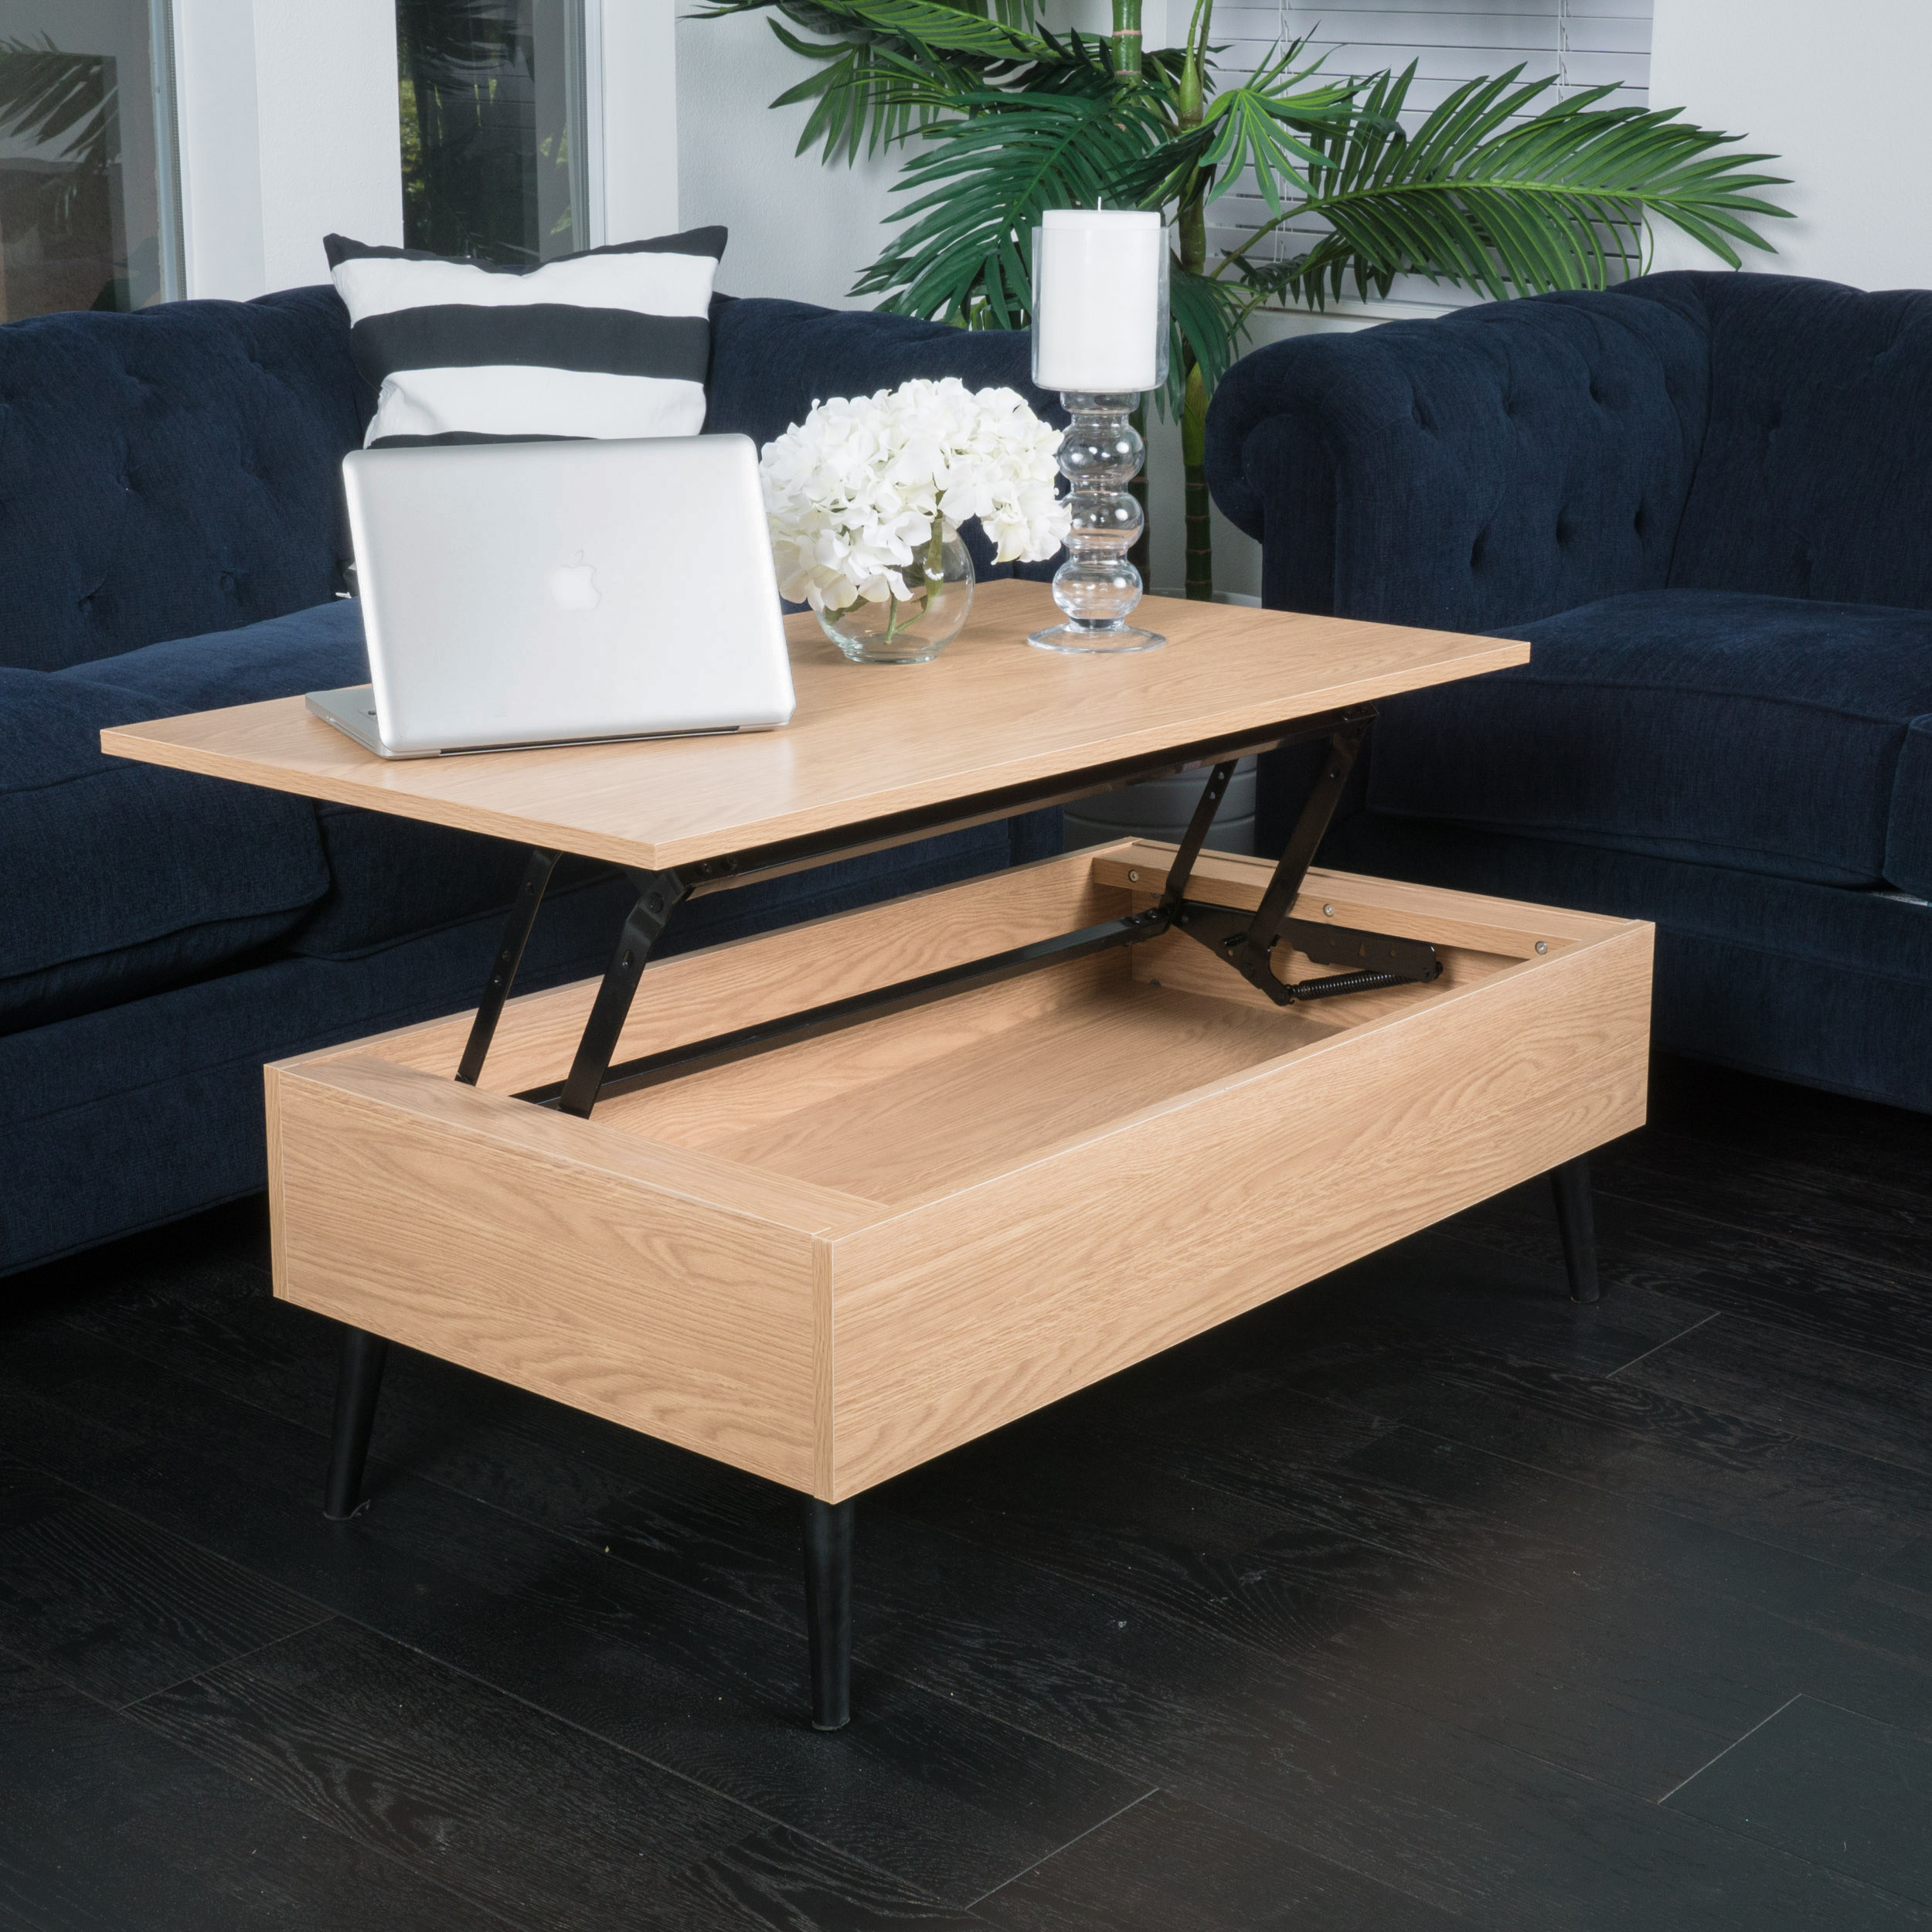 Best ideas about Coffee Table With Storage . Save or Pin Home Loft Concepts Henry Coffee Table with Lift Top Now.